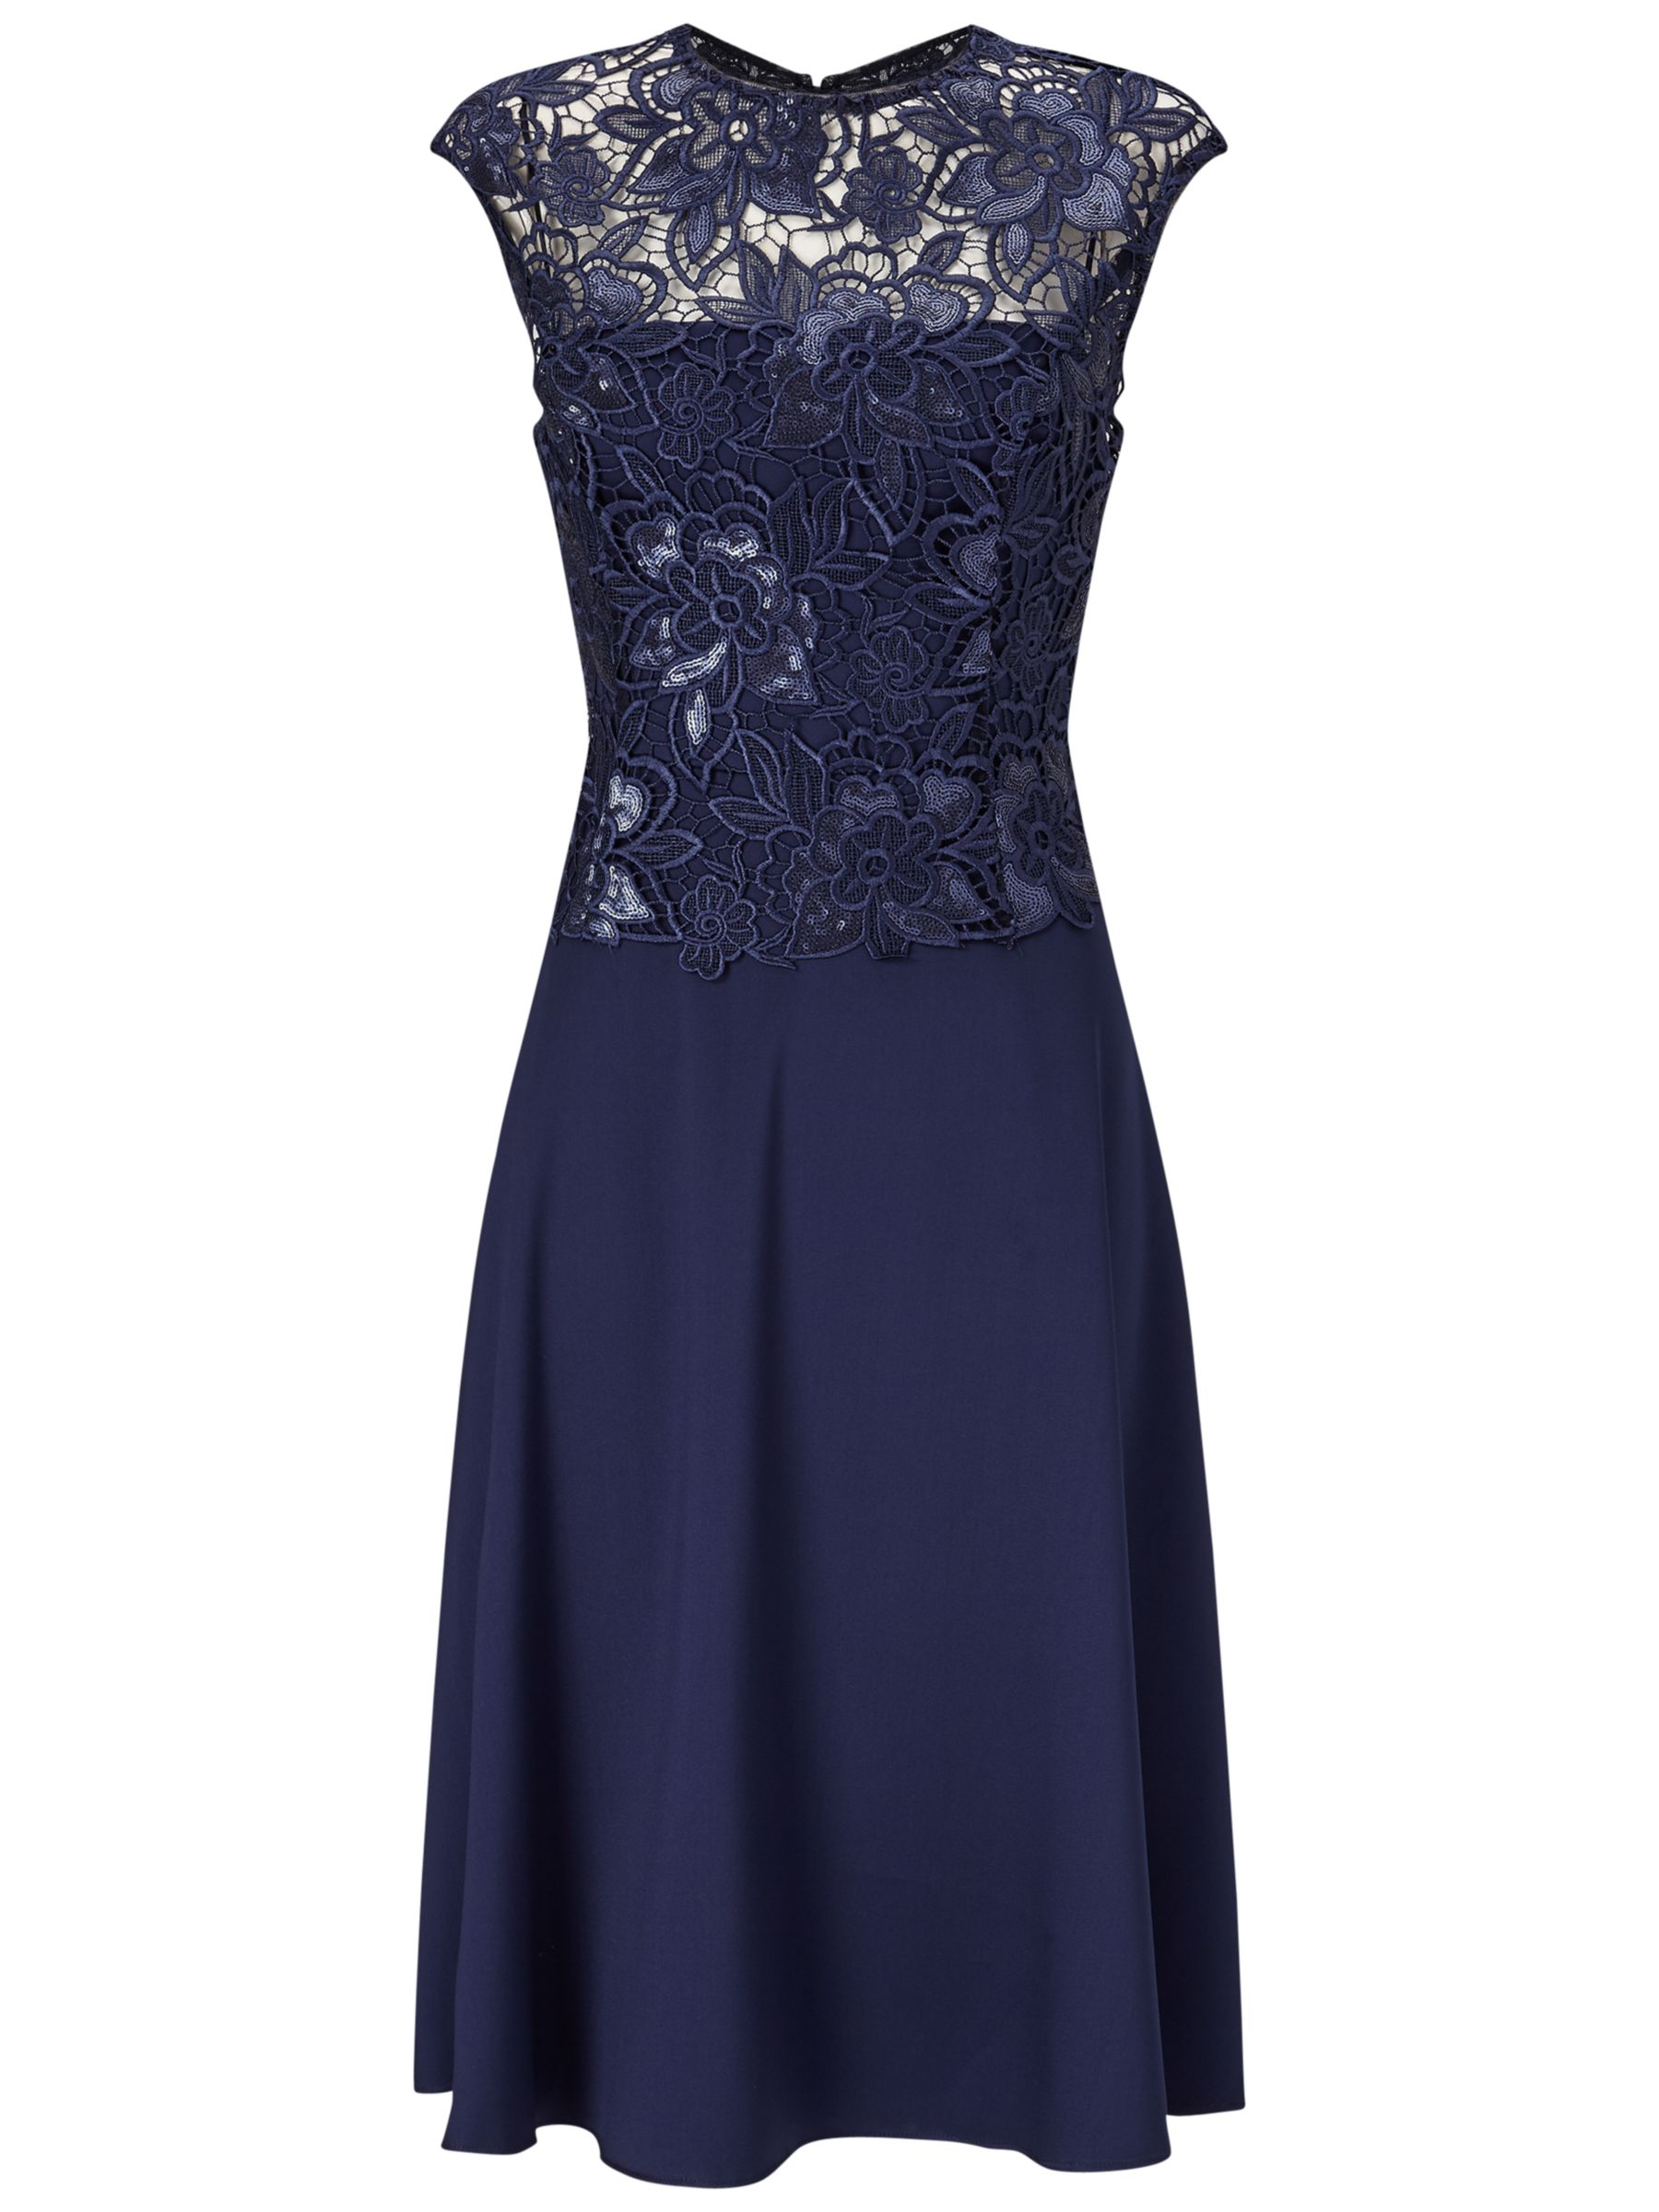 Adrianna Papell Adrianna Papell Cap Sleeve A-Line Cocktail Dress, Night Navy